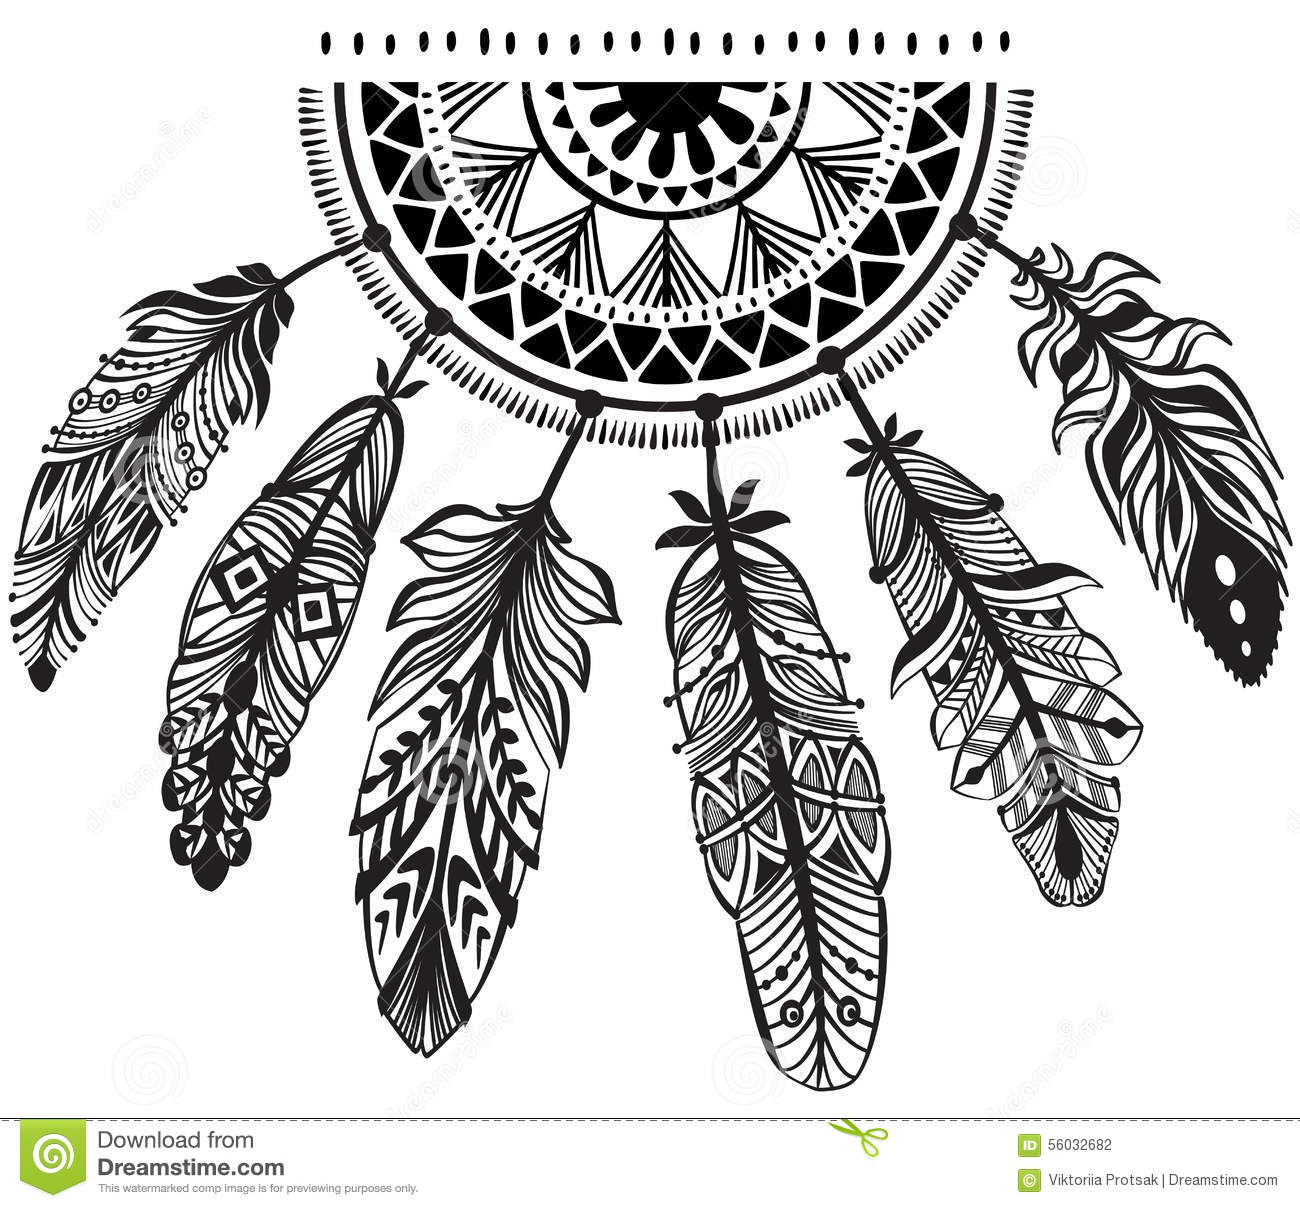 Eclectic Interior Design Vintage as well 244461085999291807 as well Barber Logo moreover Bird Wall Art furthermore Giraffe Mandala Coloring Pages. on hipster living room ideas